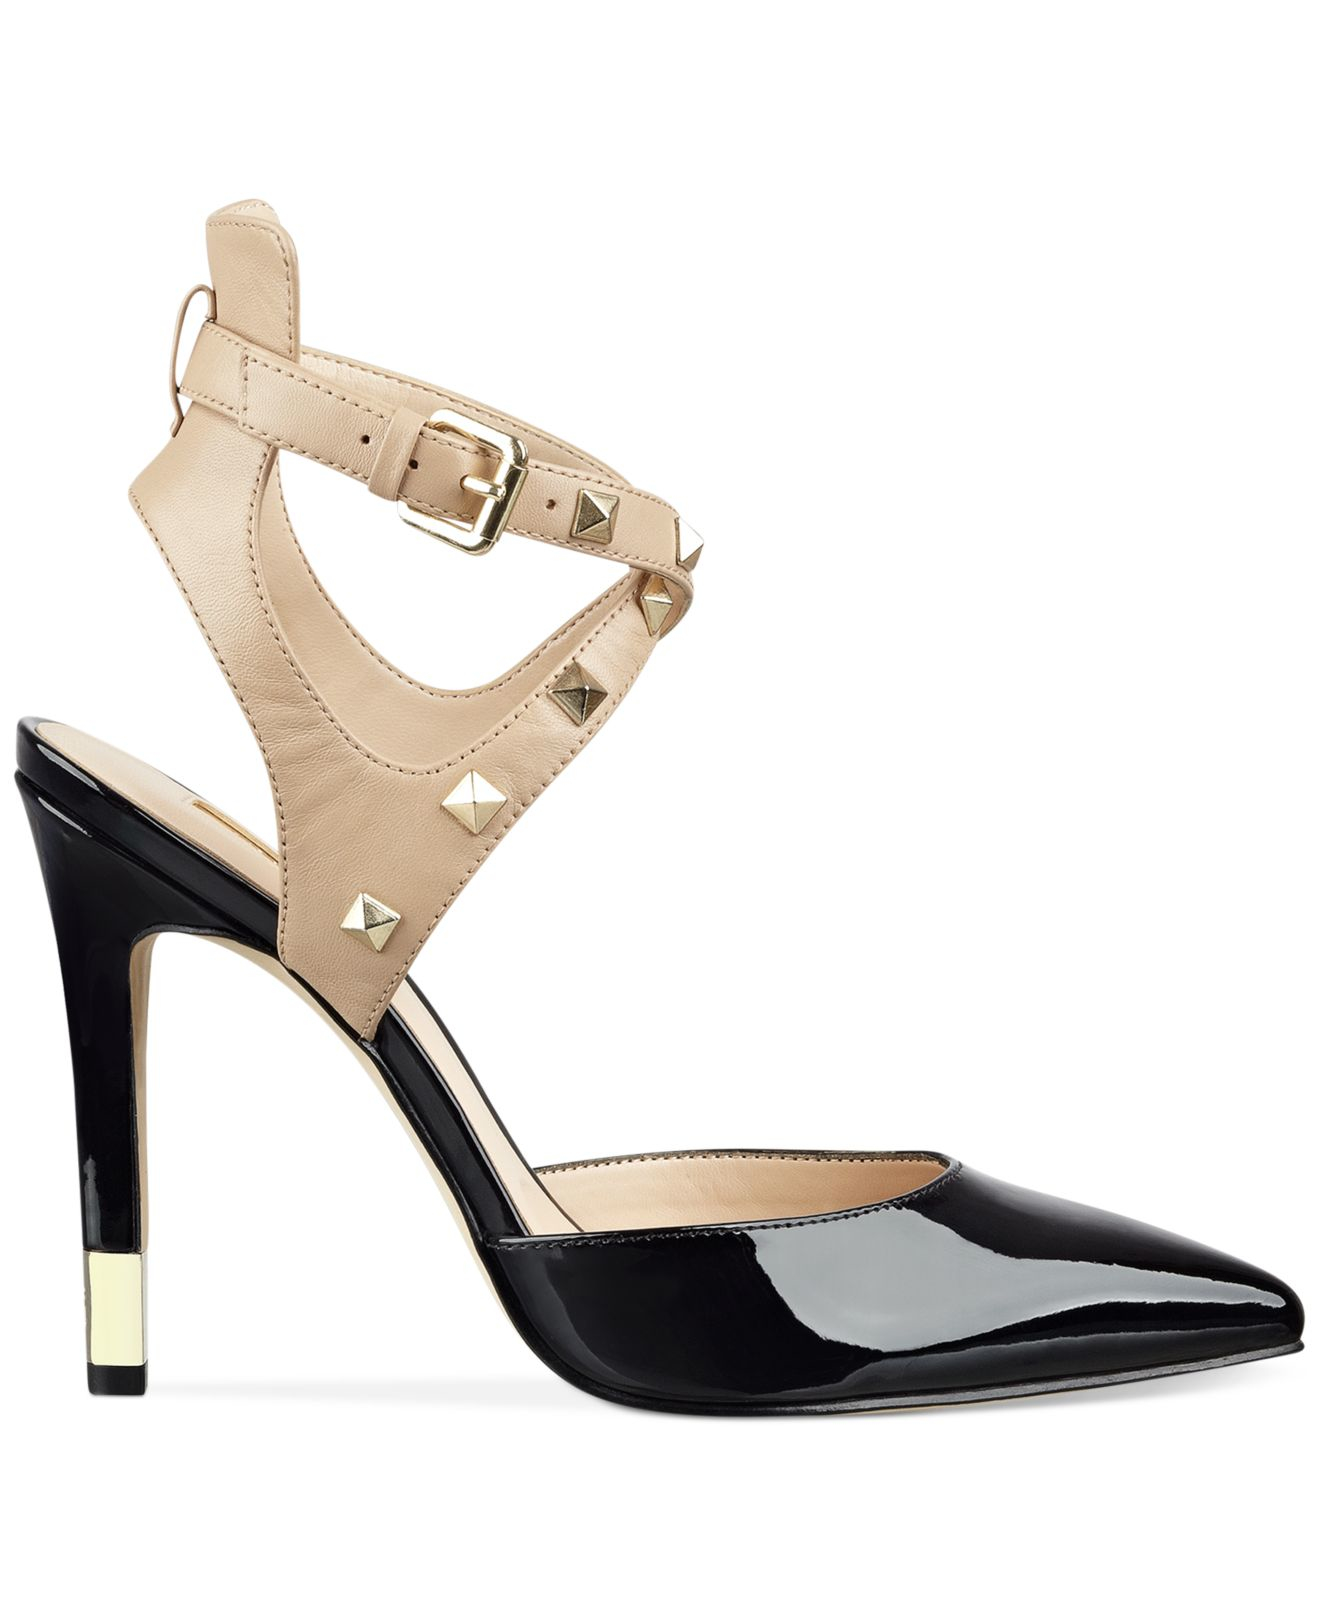 Navy brea heeled sandal outlet with paypal order free shipping get to buy visit online clearance official site very cheap for sale Qux1h4z